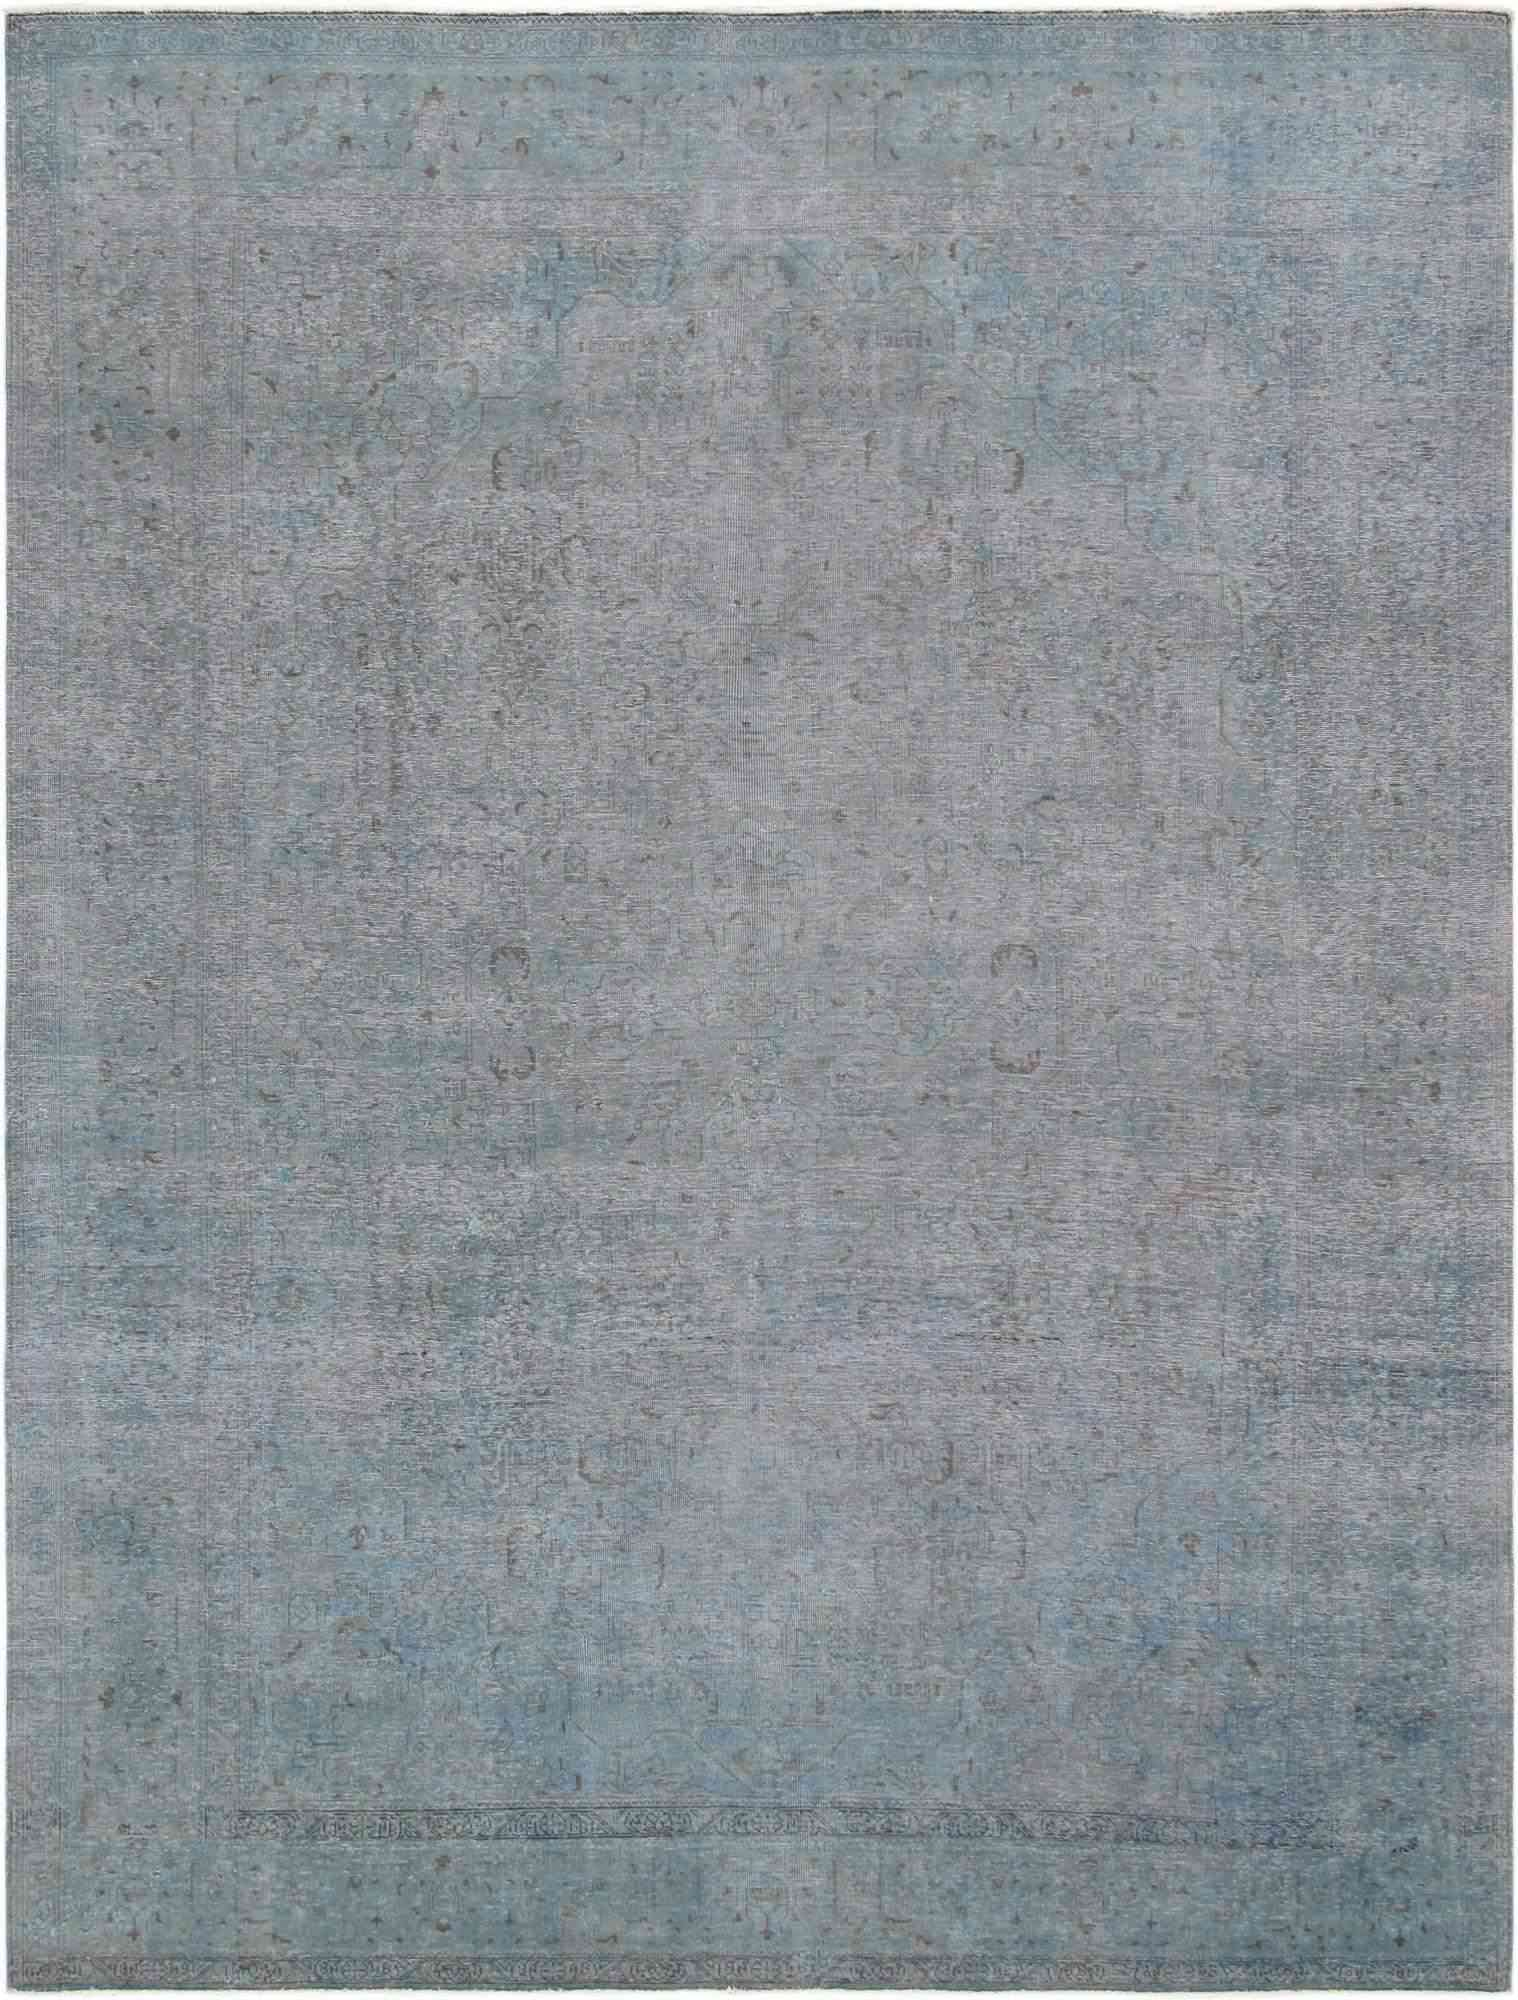 A blue overdyed rug.